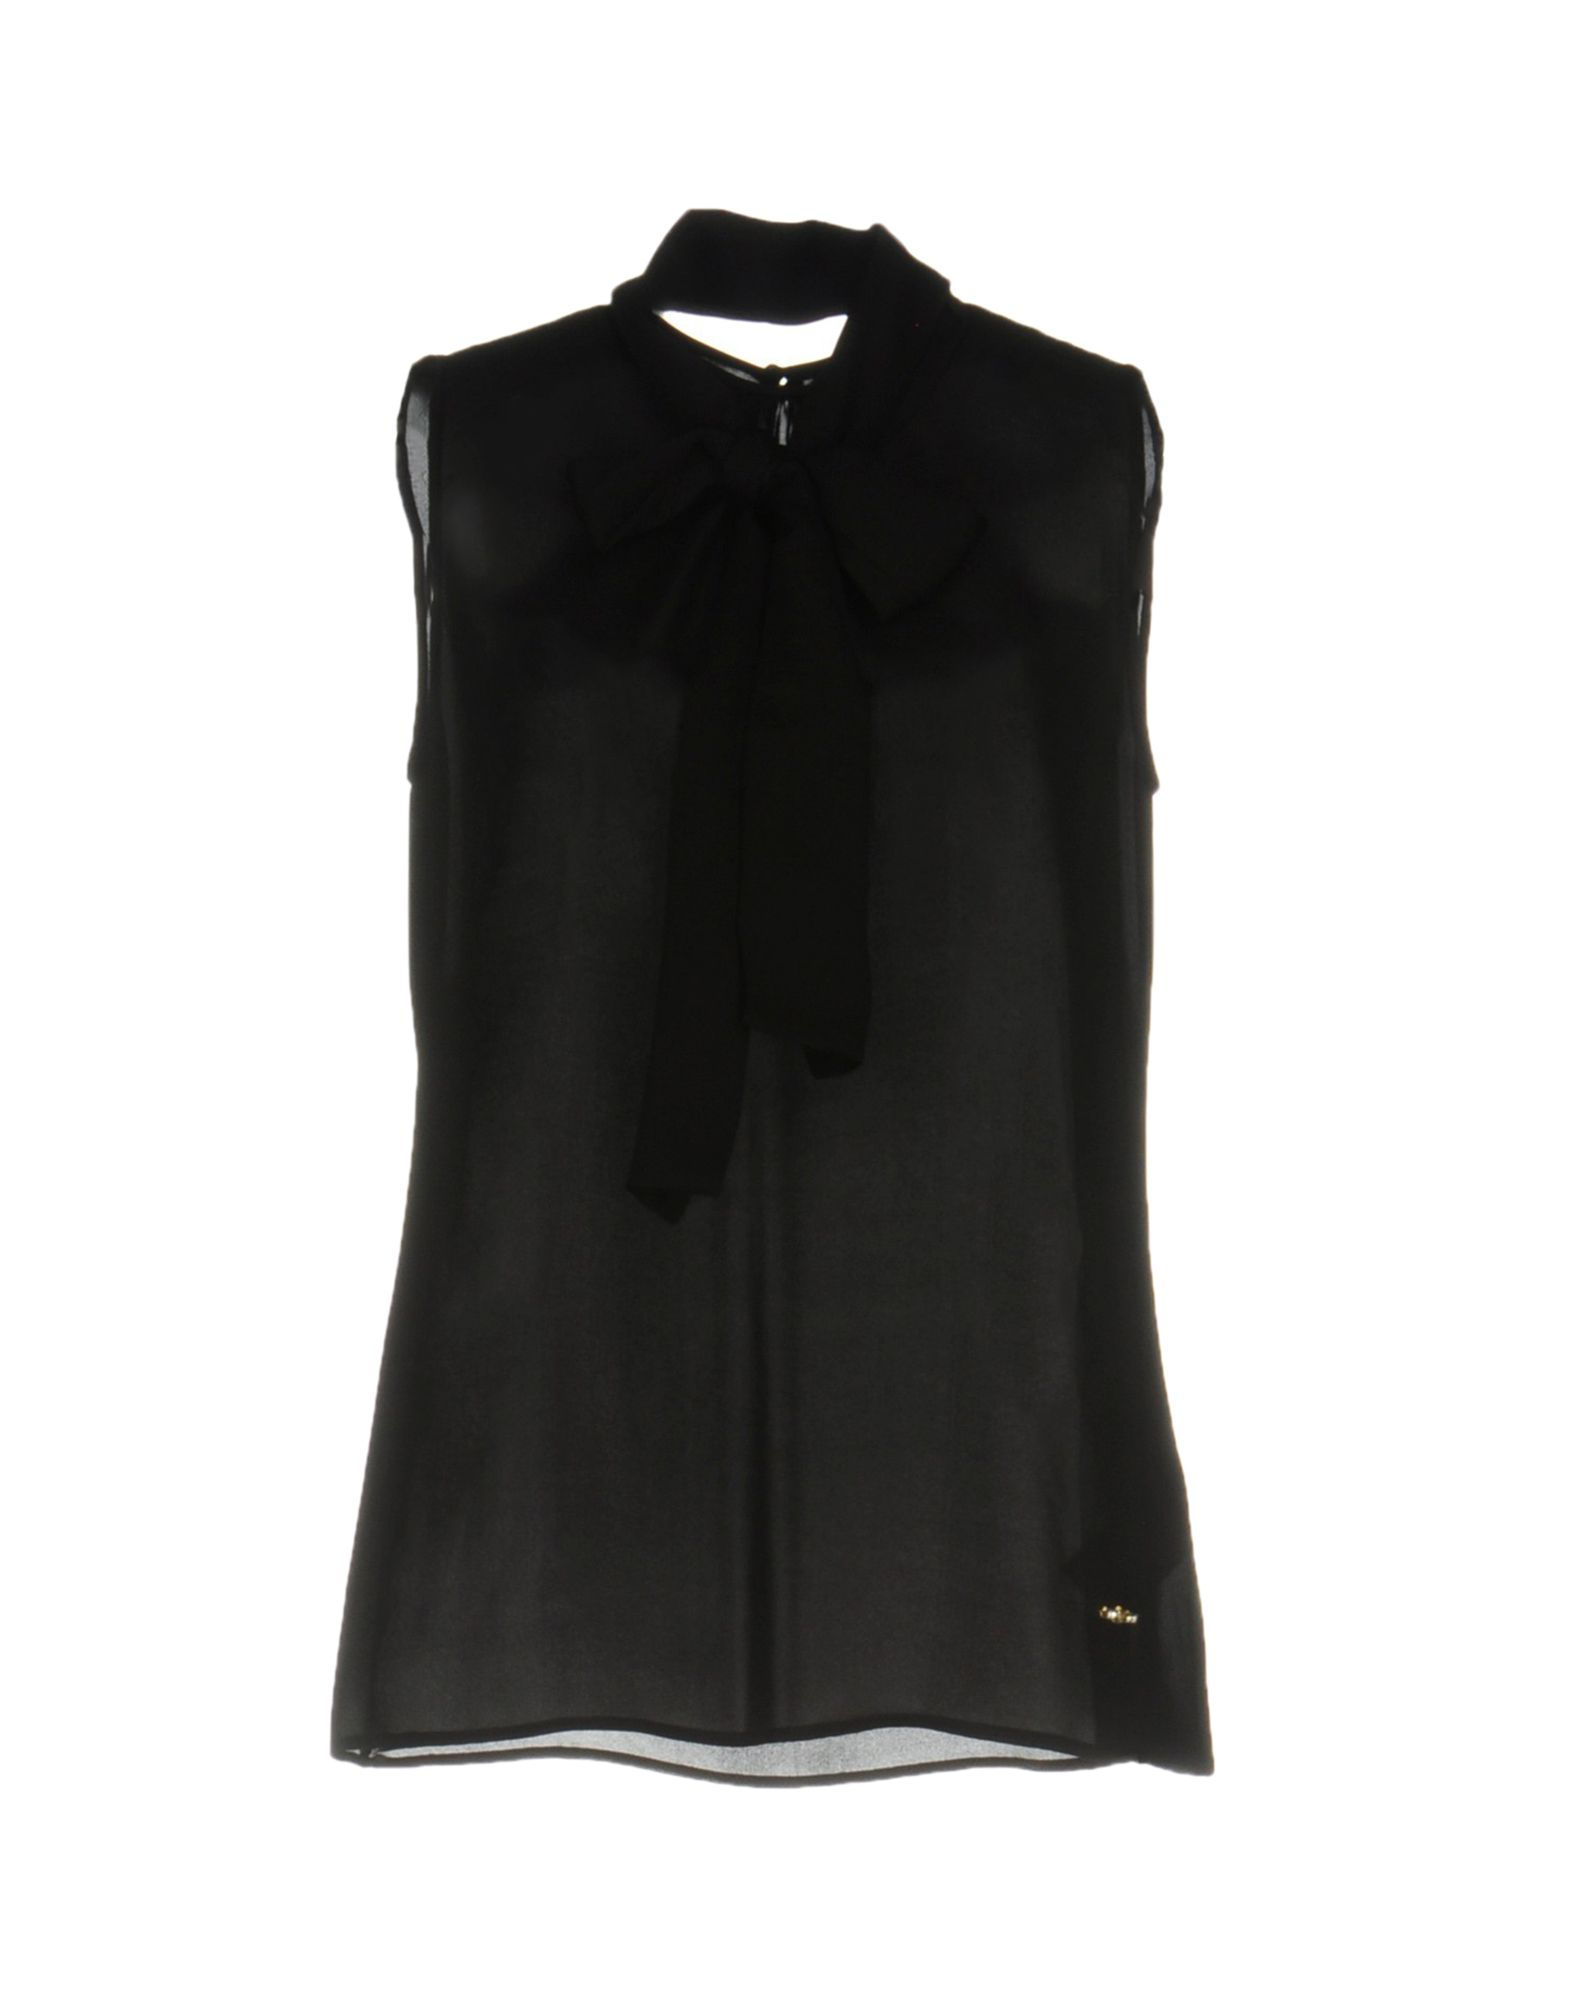 DSQUARED2 Damen Top4 schwarz